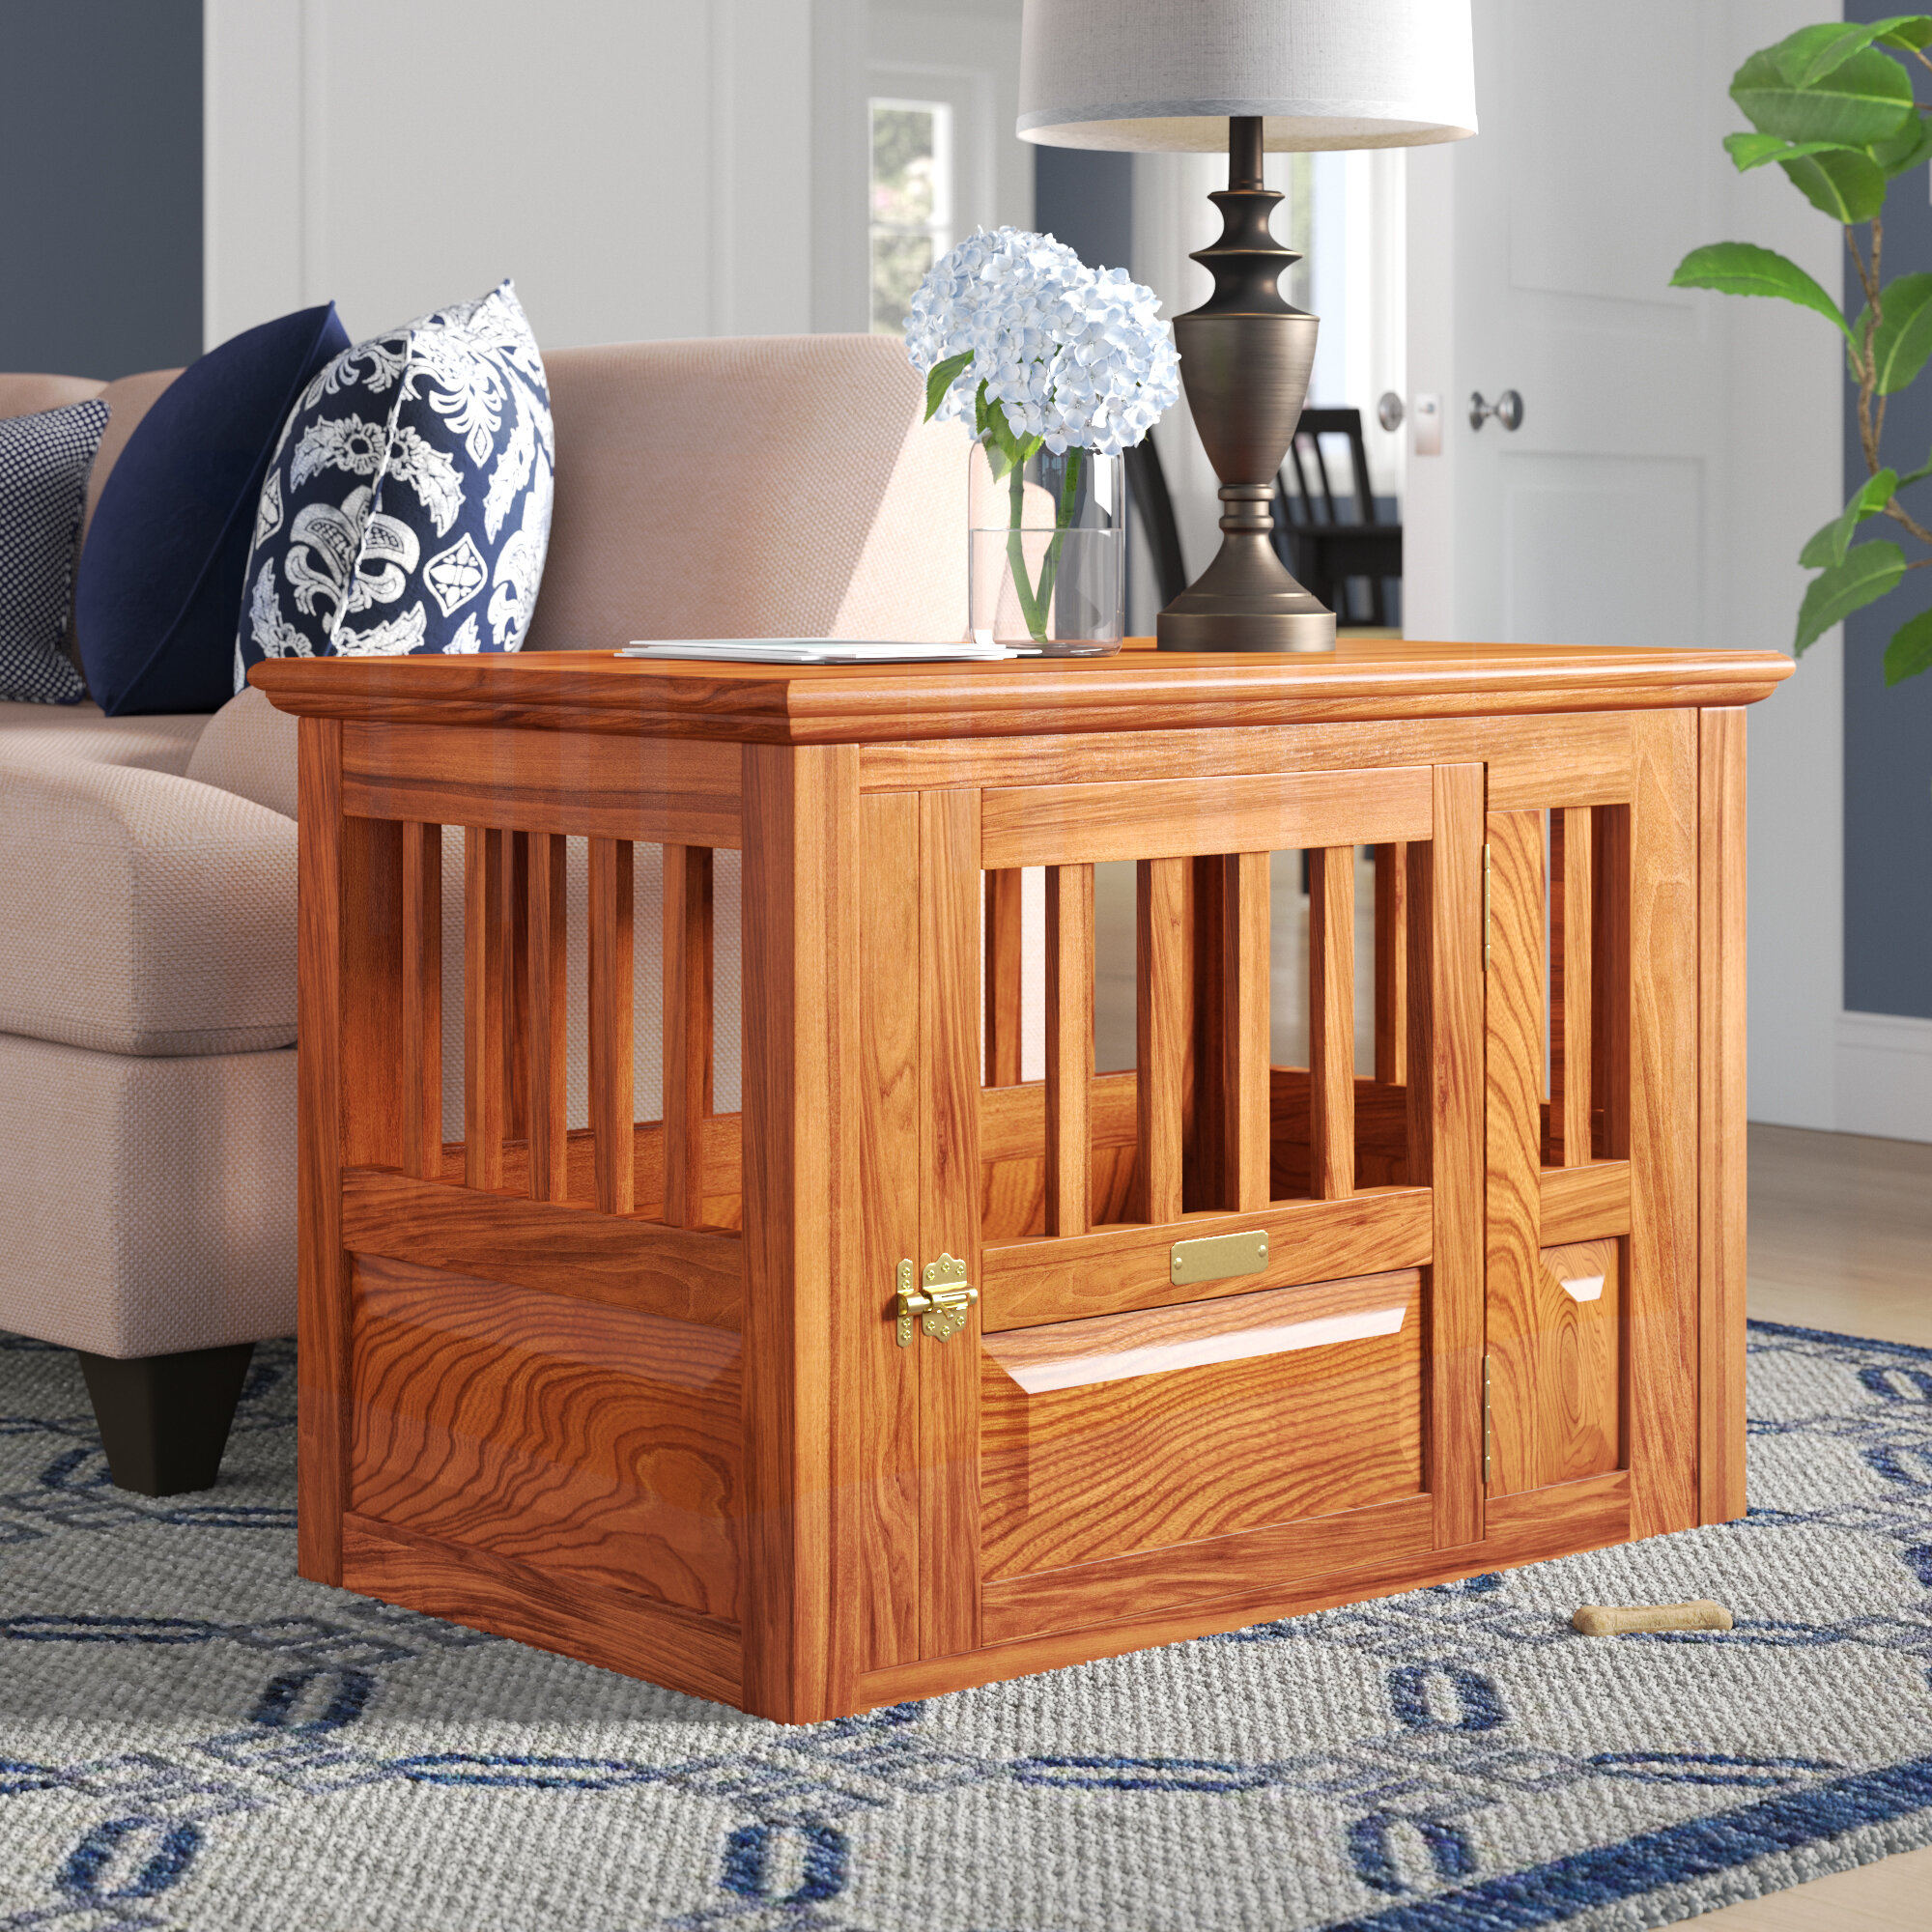 Bon Archie U0026 Oscar Dixie Handmade Furniture Style Pet Crate U0026 Reviews | Wayfair